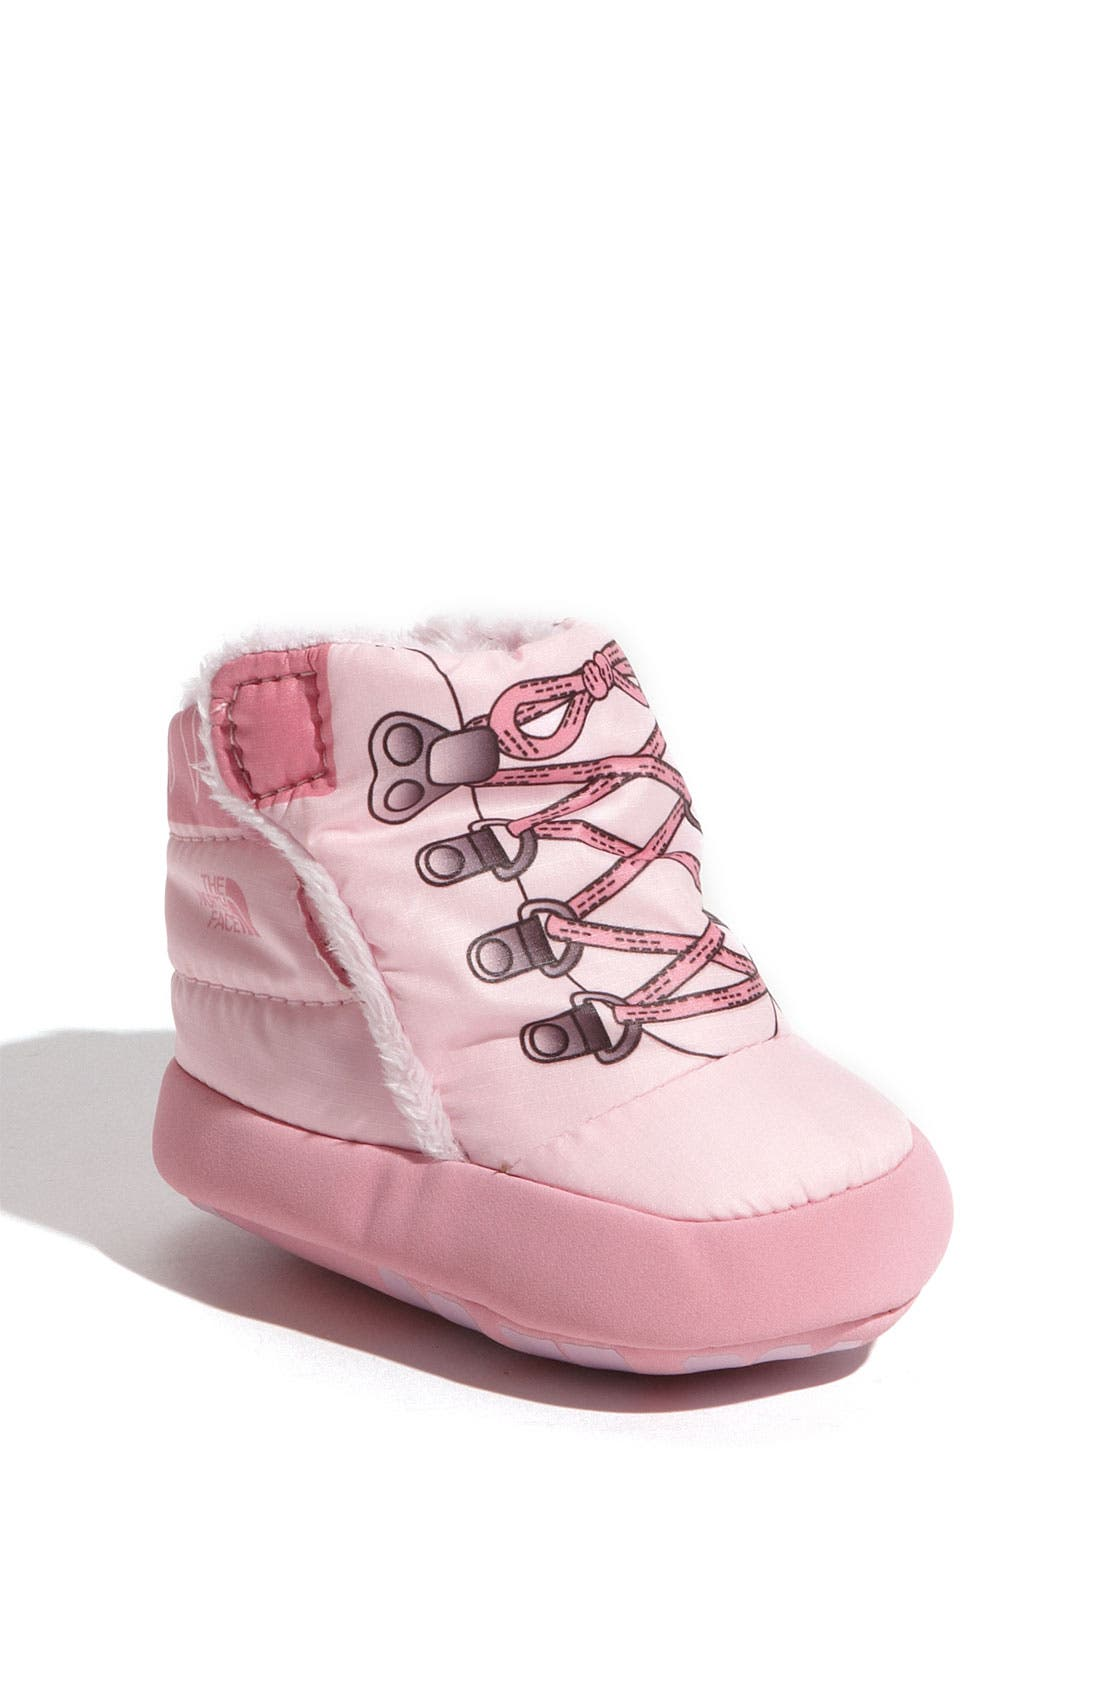 Alternate Image 1 Selected - The North Face Bootie (Baby)